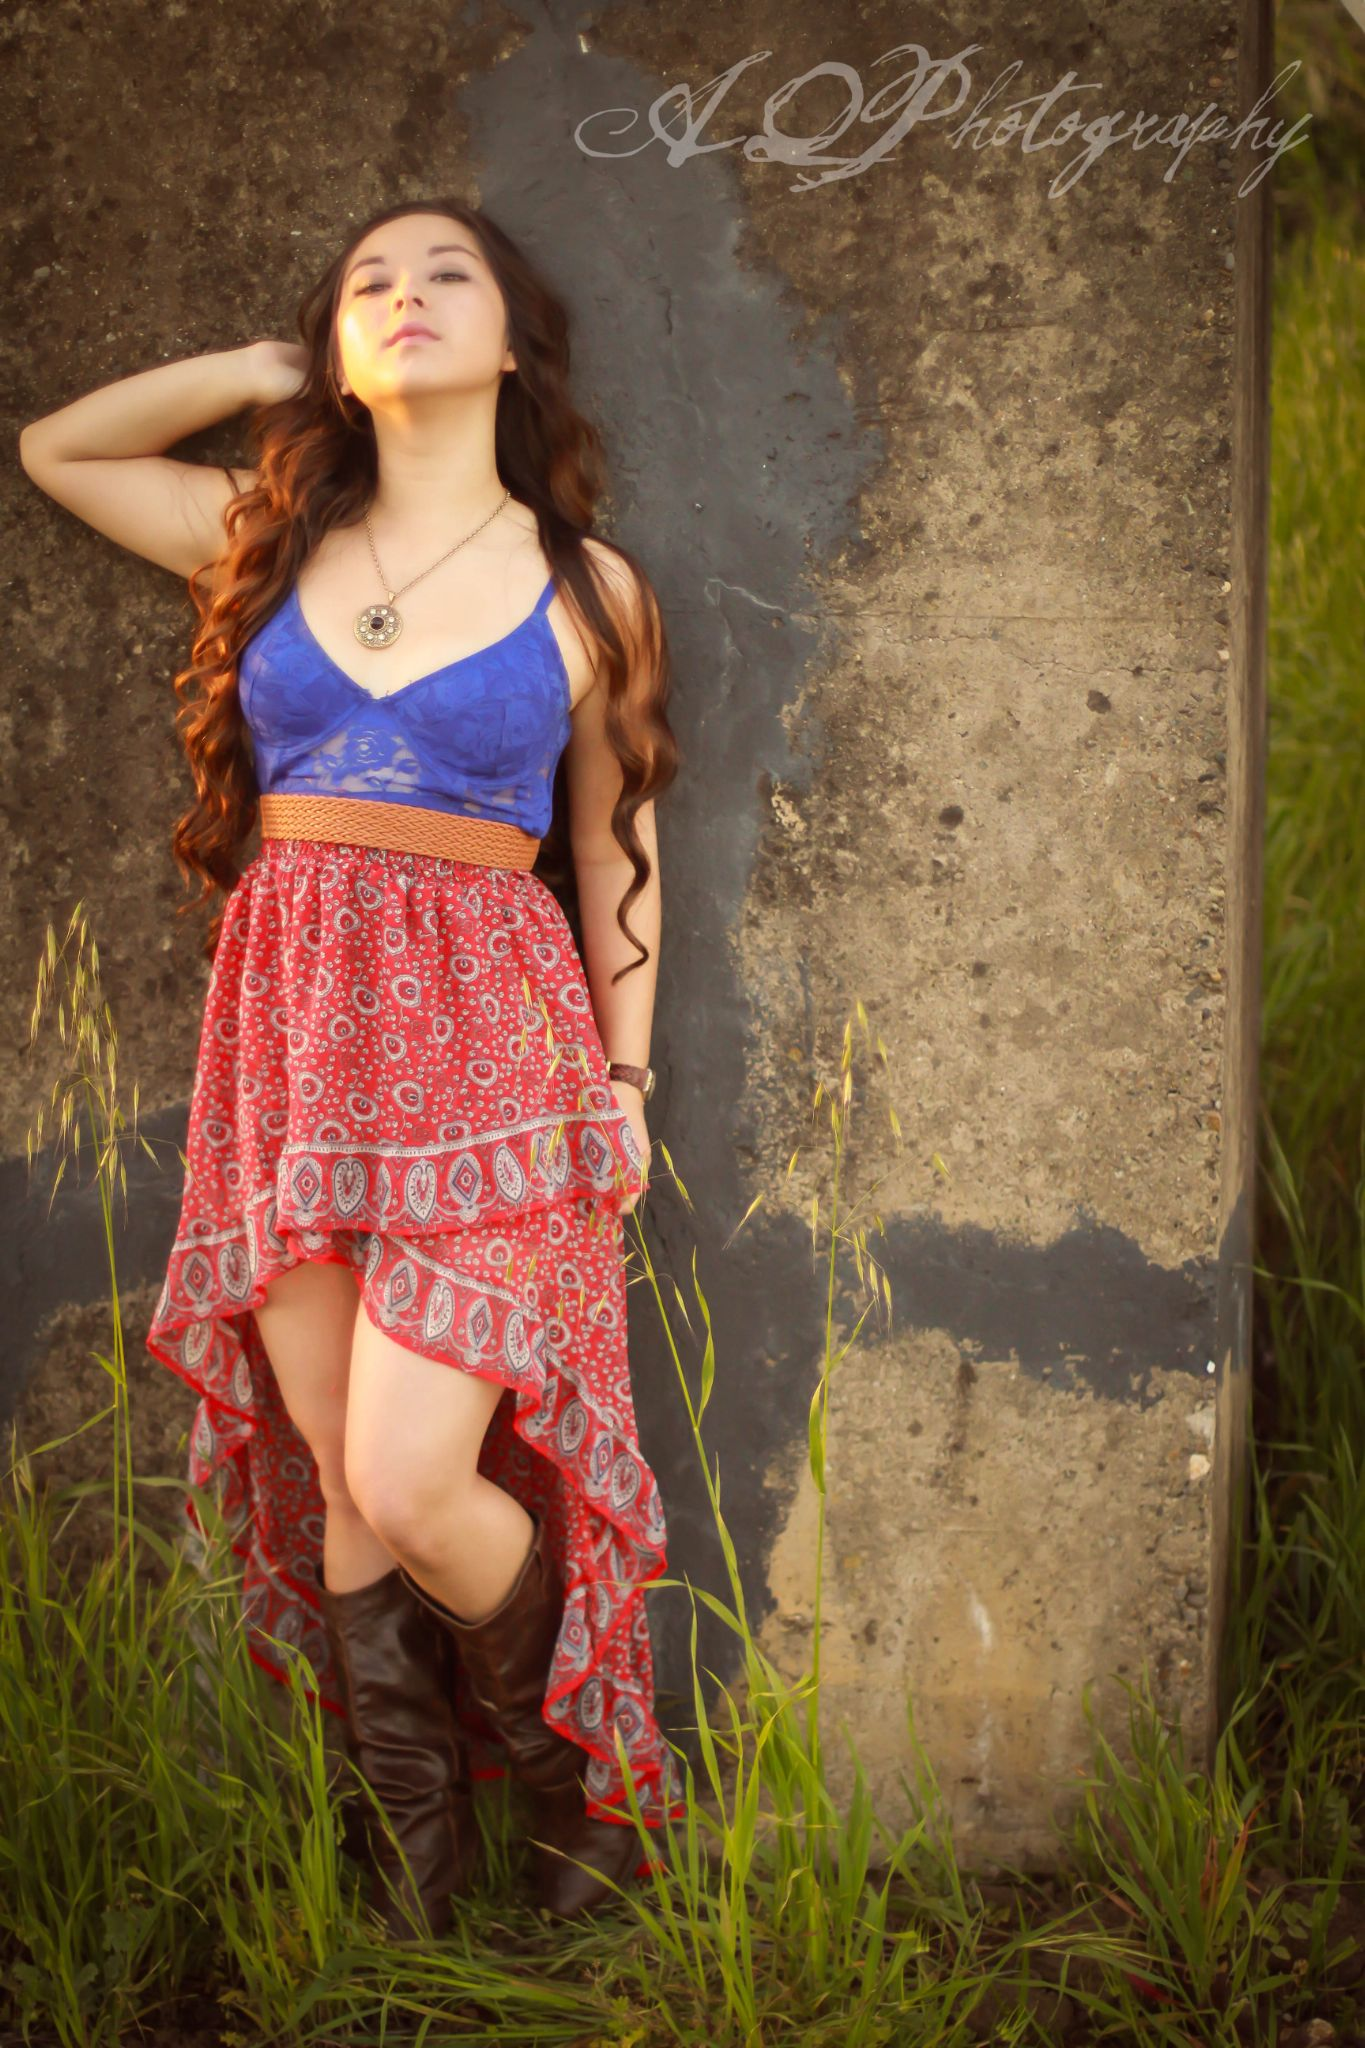 IMG_1532 lightroom by AQPhotography